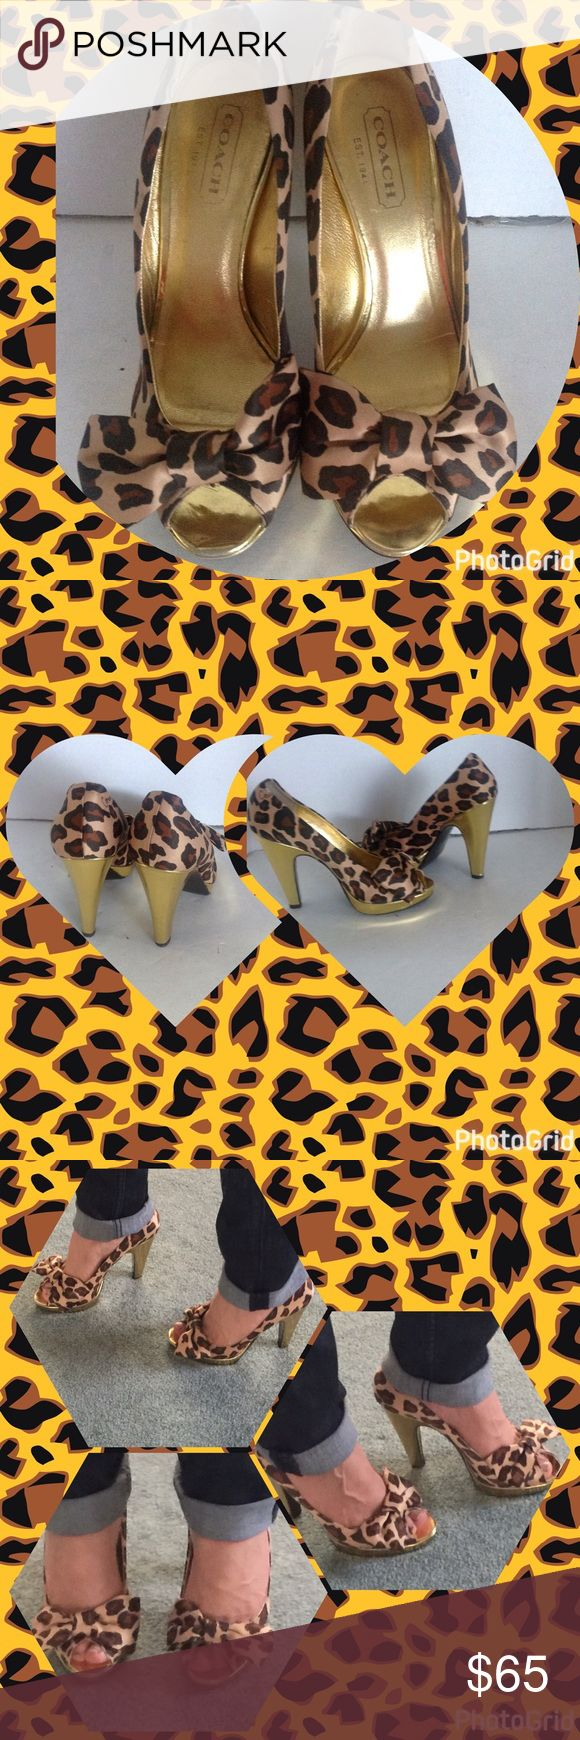 Coach Brown Leopard Satin Daisy Peep Toe Heels Coach Brown Leopard Satin Daisy Peep Toe Heels ....Very good condition with a slightly signs of wear. Made in Italy : Tan and Brown Leopard Print with Gold Trimmings, bottoms Brown, /leather Coach Shoes Heels